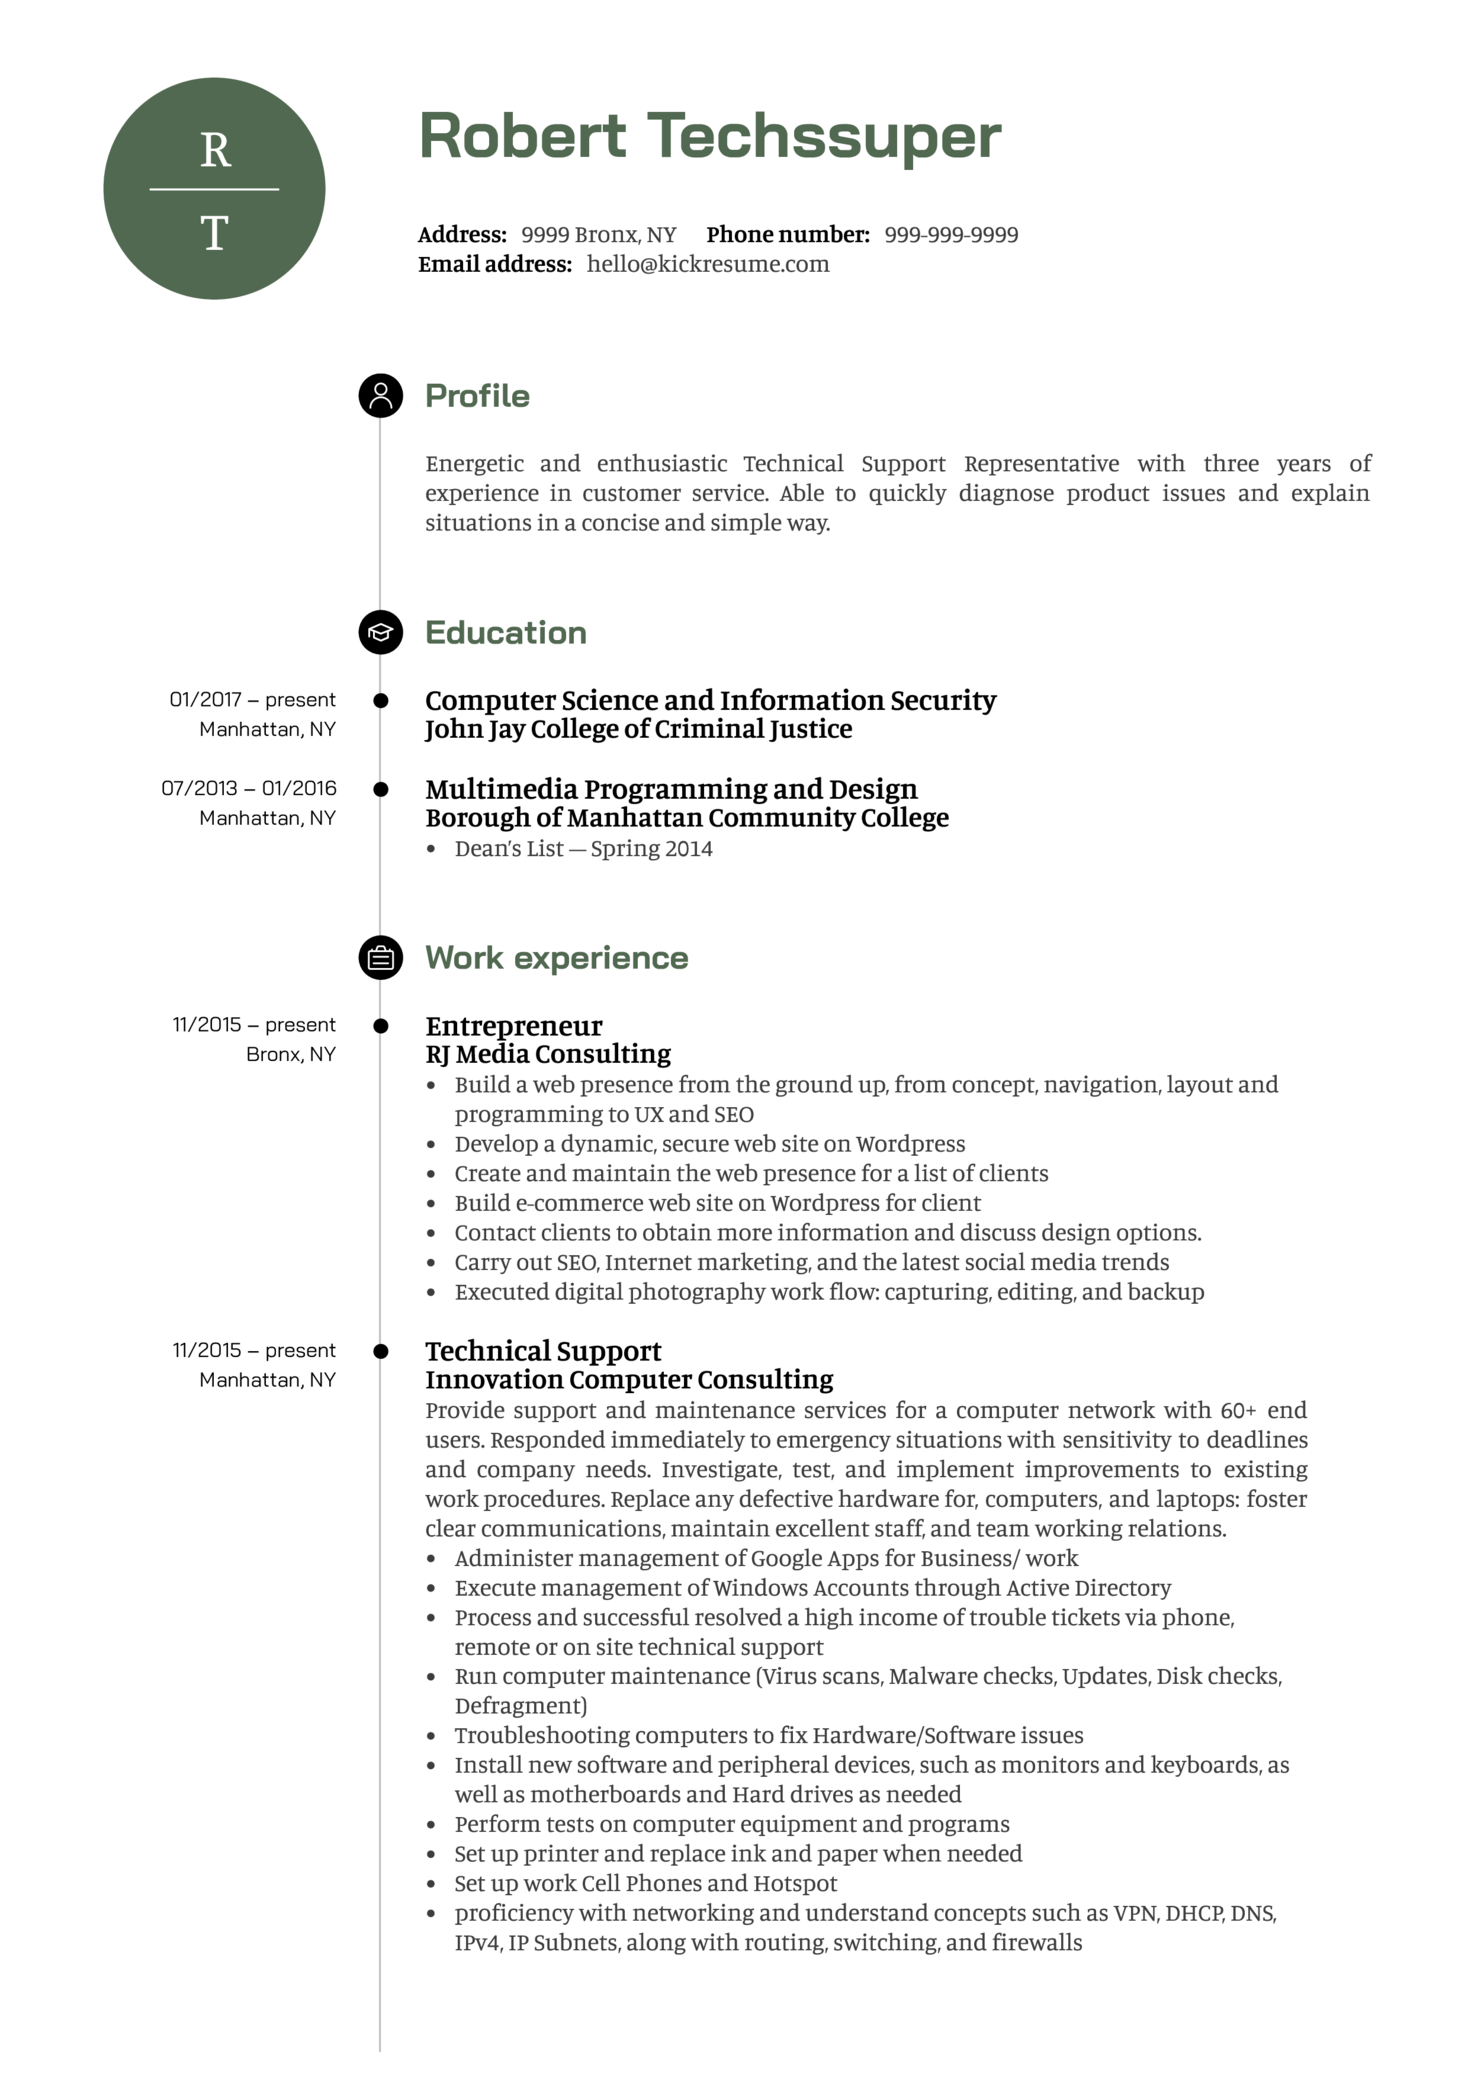 sample resume written to land a blue collar job